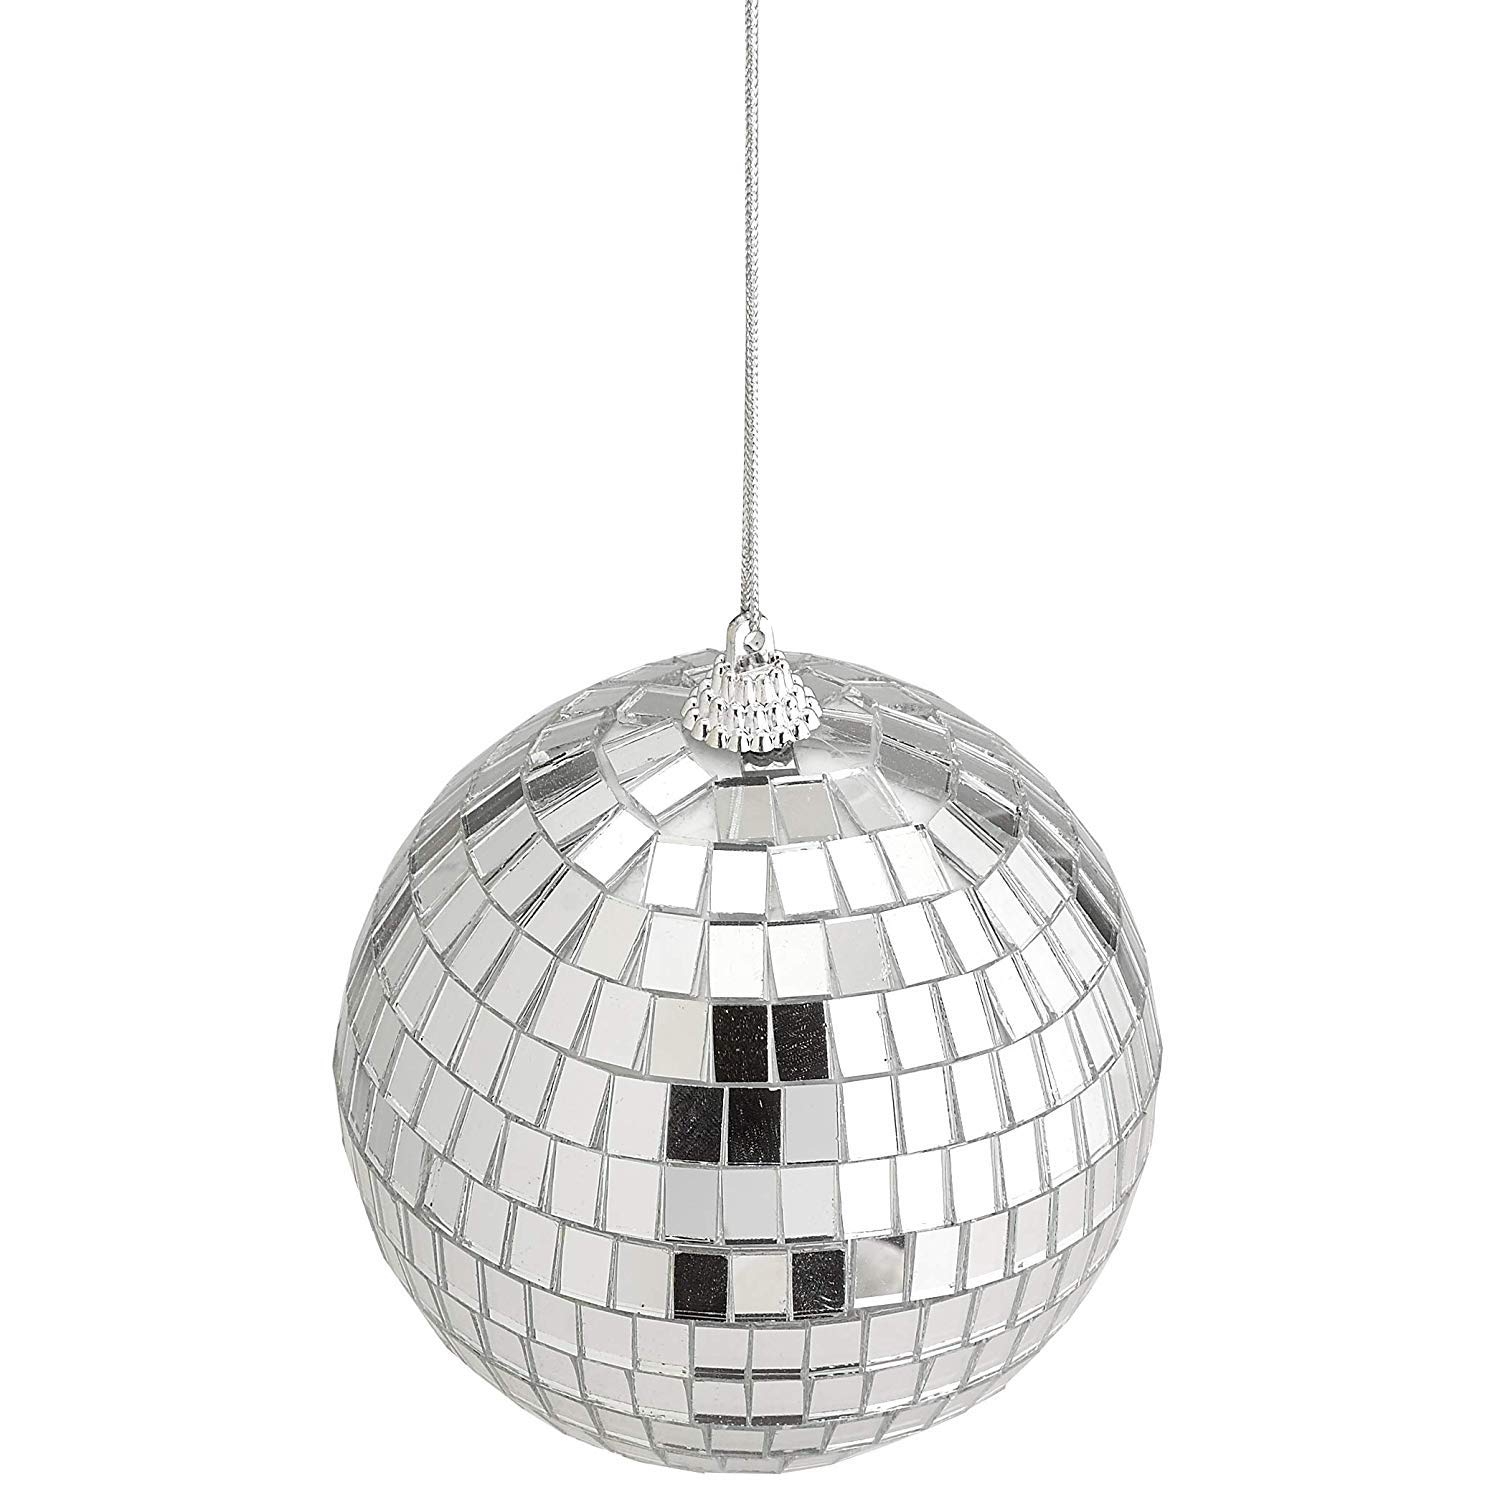 4'' Mirror Disco Lights - Silver Hanging Ball - Perfect for Home Decorations, Stage Props, Game Accessories, School Festivals, Party Favor and Supplies by Kidsco (Image #7)